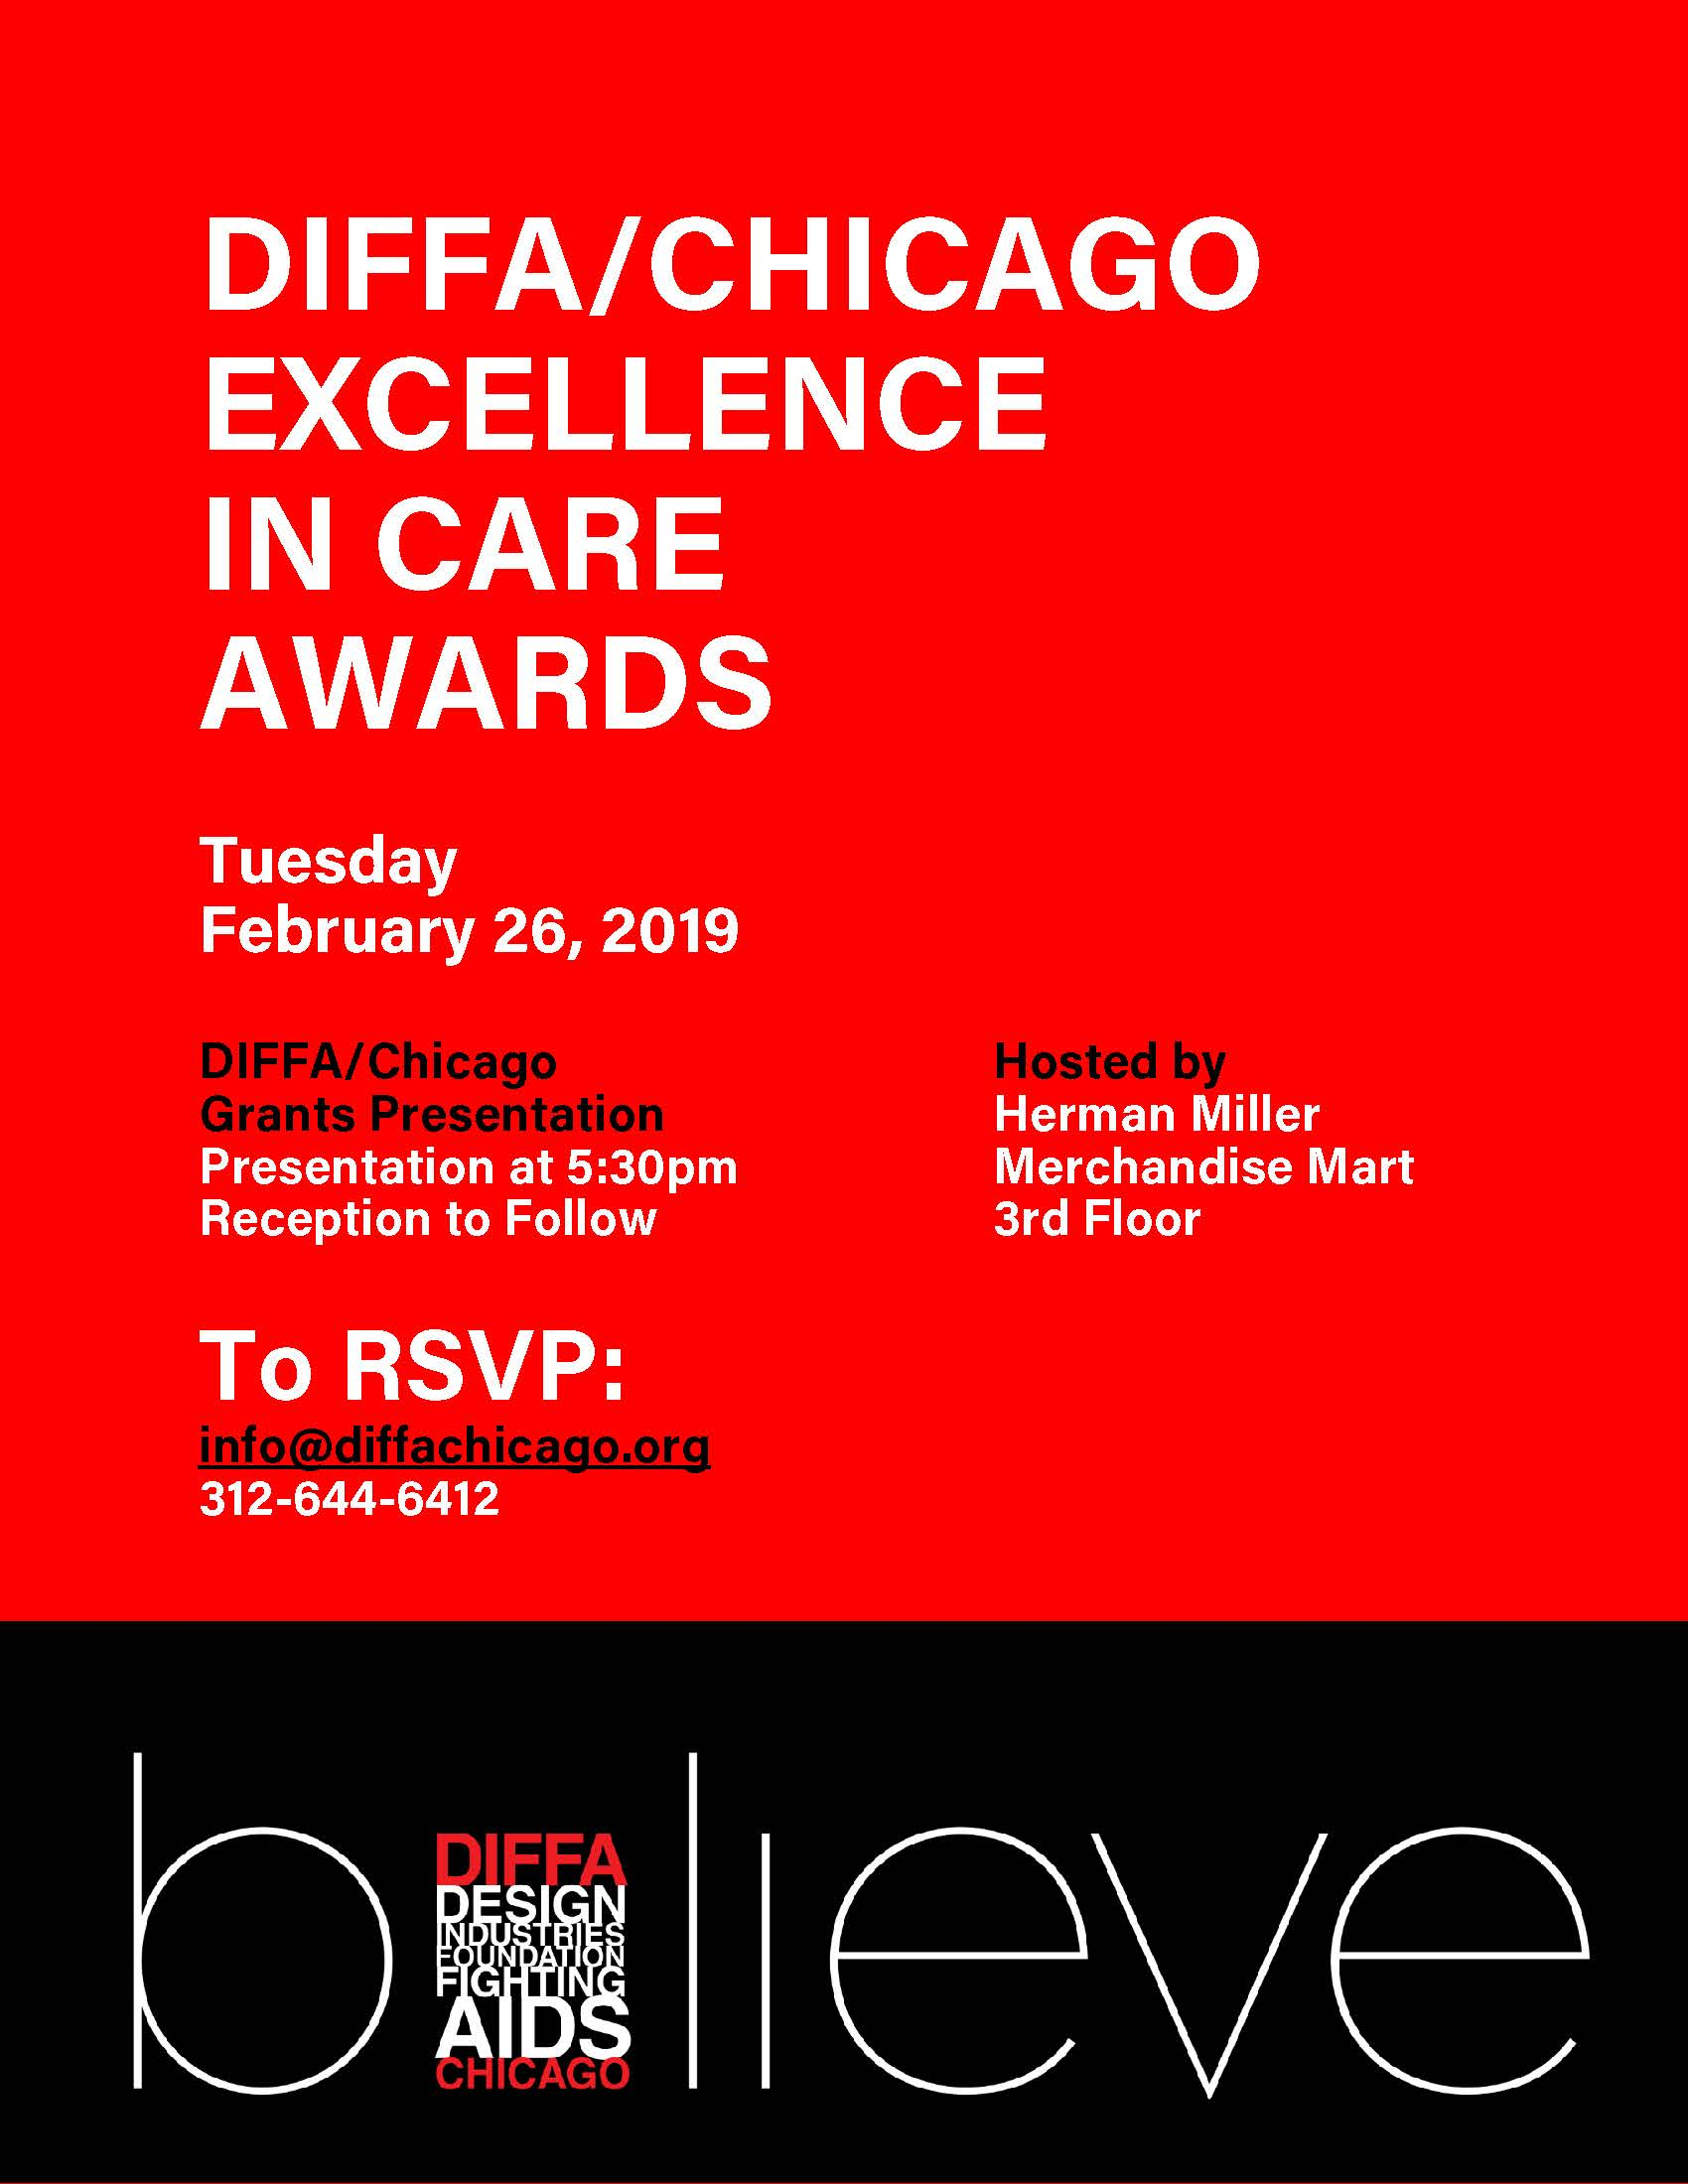 Excellence In Care Awards & Grant Reception